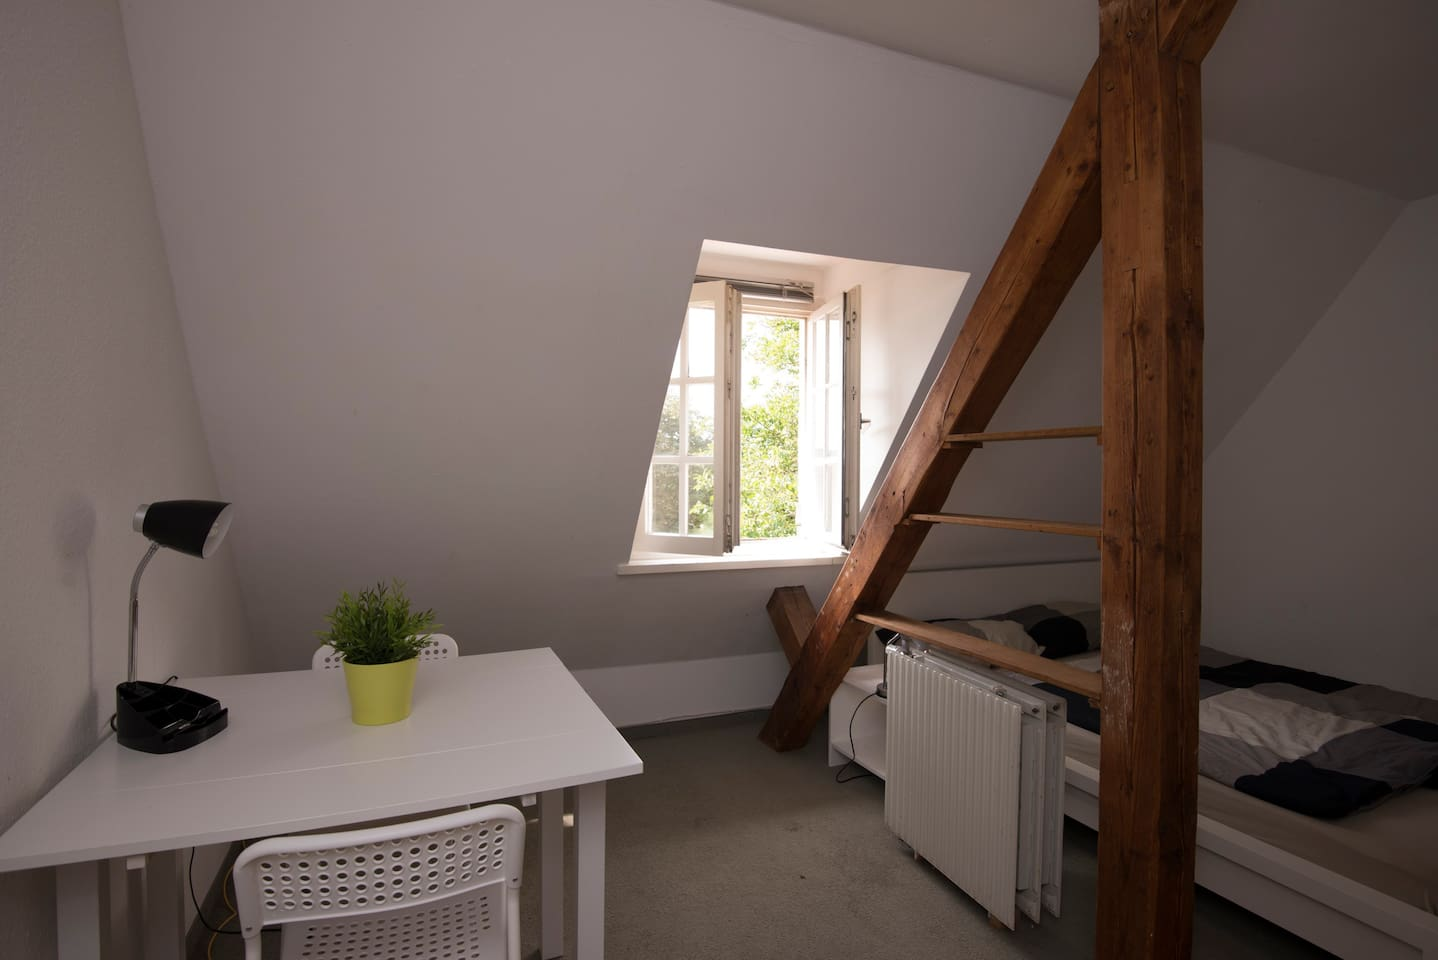 206 - double bed and single bed (can be removed if only 1-2 persons) and a  great view to the south